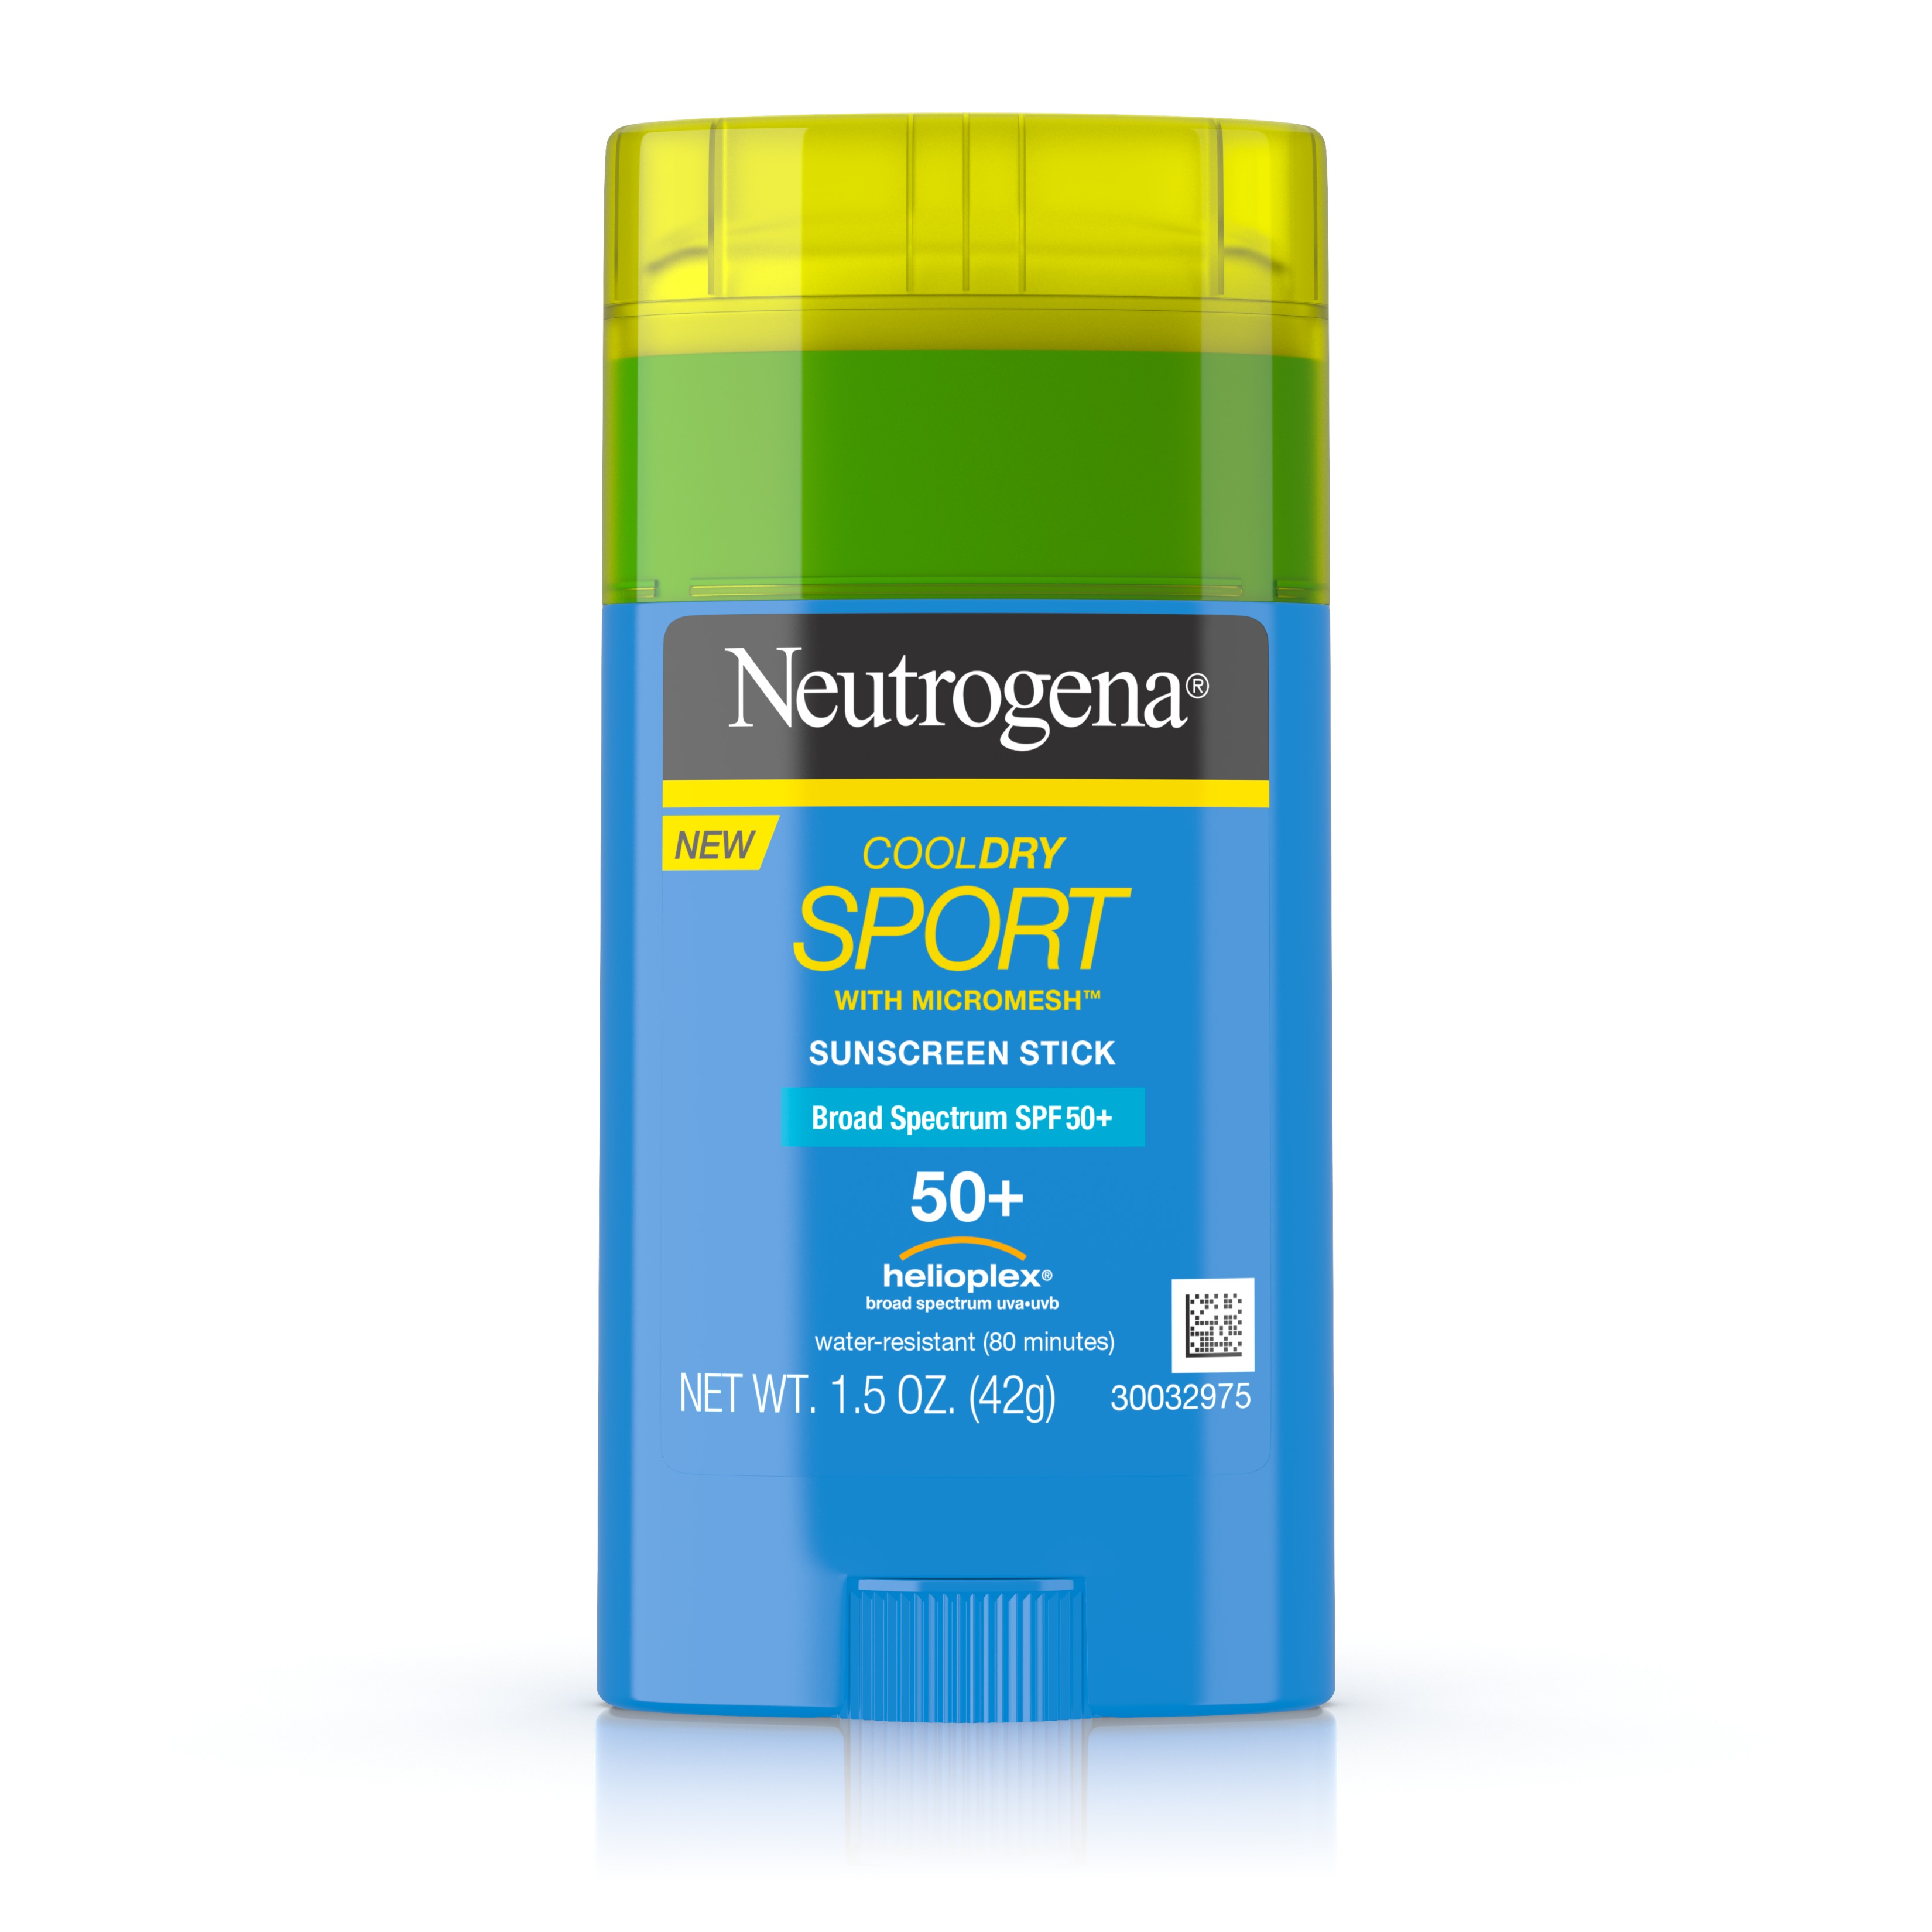 Neutrogena CoolDry Sport Sunscreen Stick with SPF 50, 1.5 oz